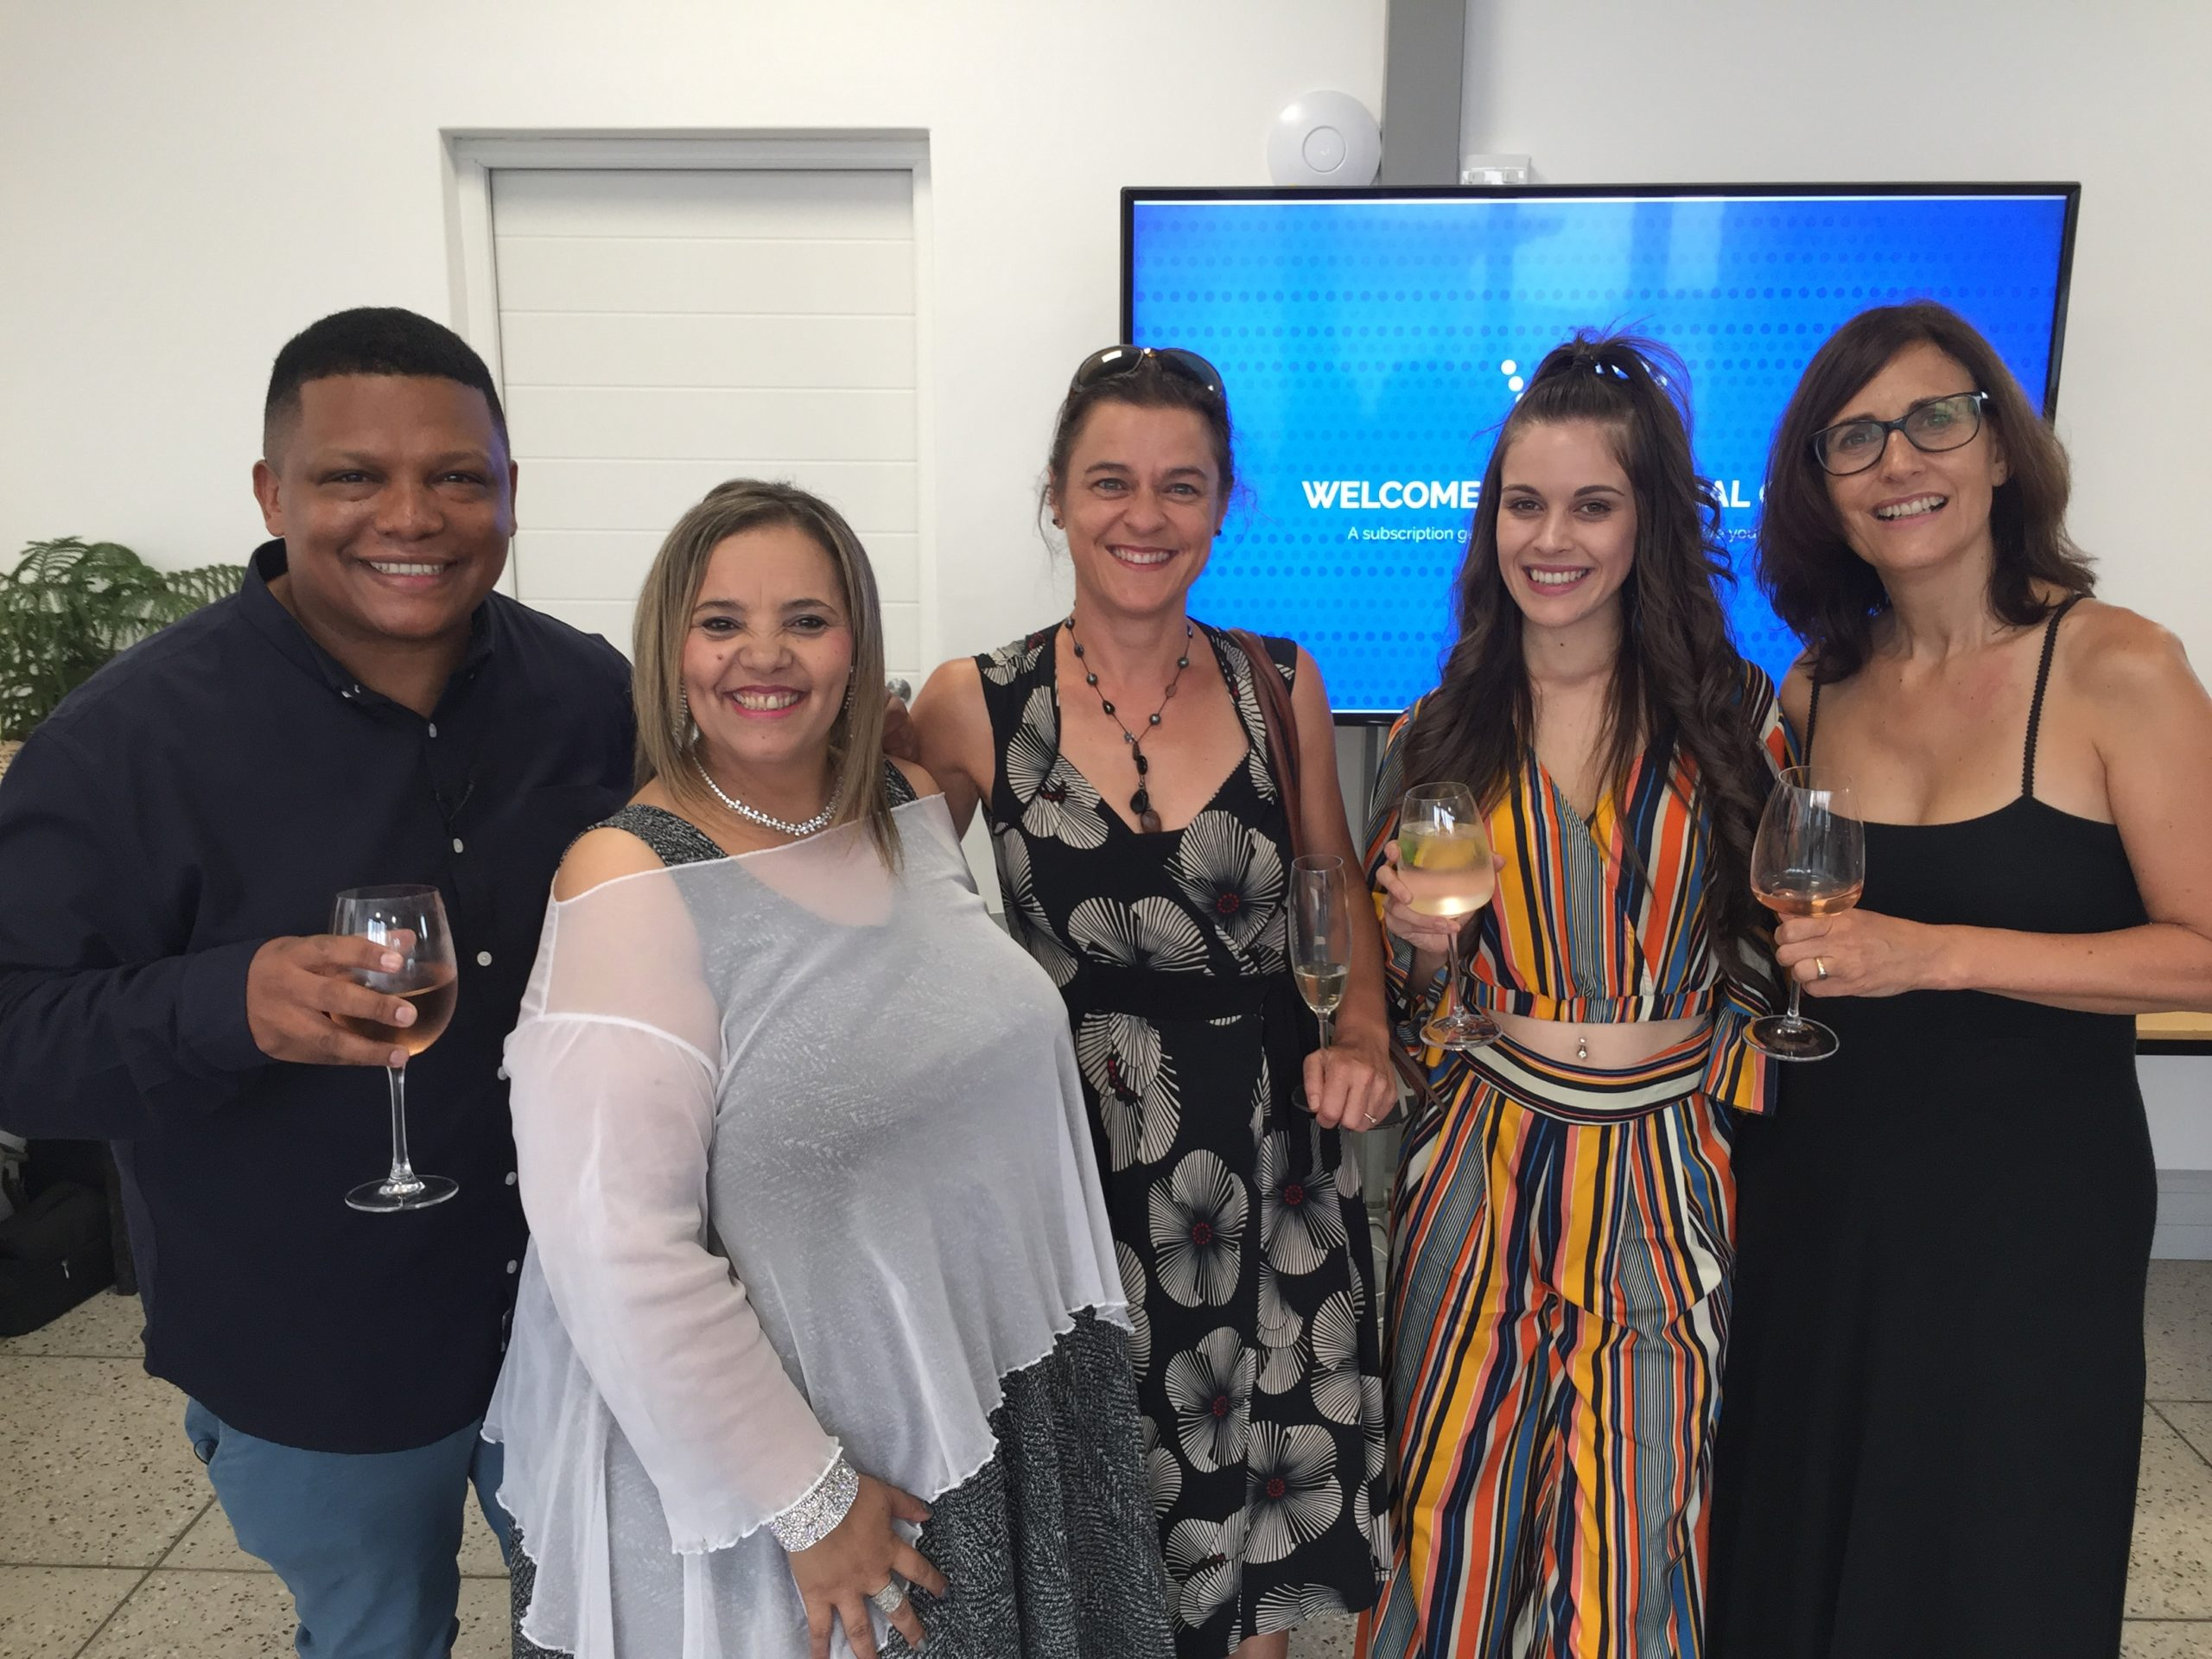 From left: Ivor Price (TV Presenter and media personality), Danneline Ramsden (word artist and performer), Andrea Du Plessis (nutritionist and TV personality), Maria Valente de Almeida (actress on KykNET & kie soapie Arendsvlei), Laurinda Hofmeyr (singer and composer).